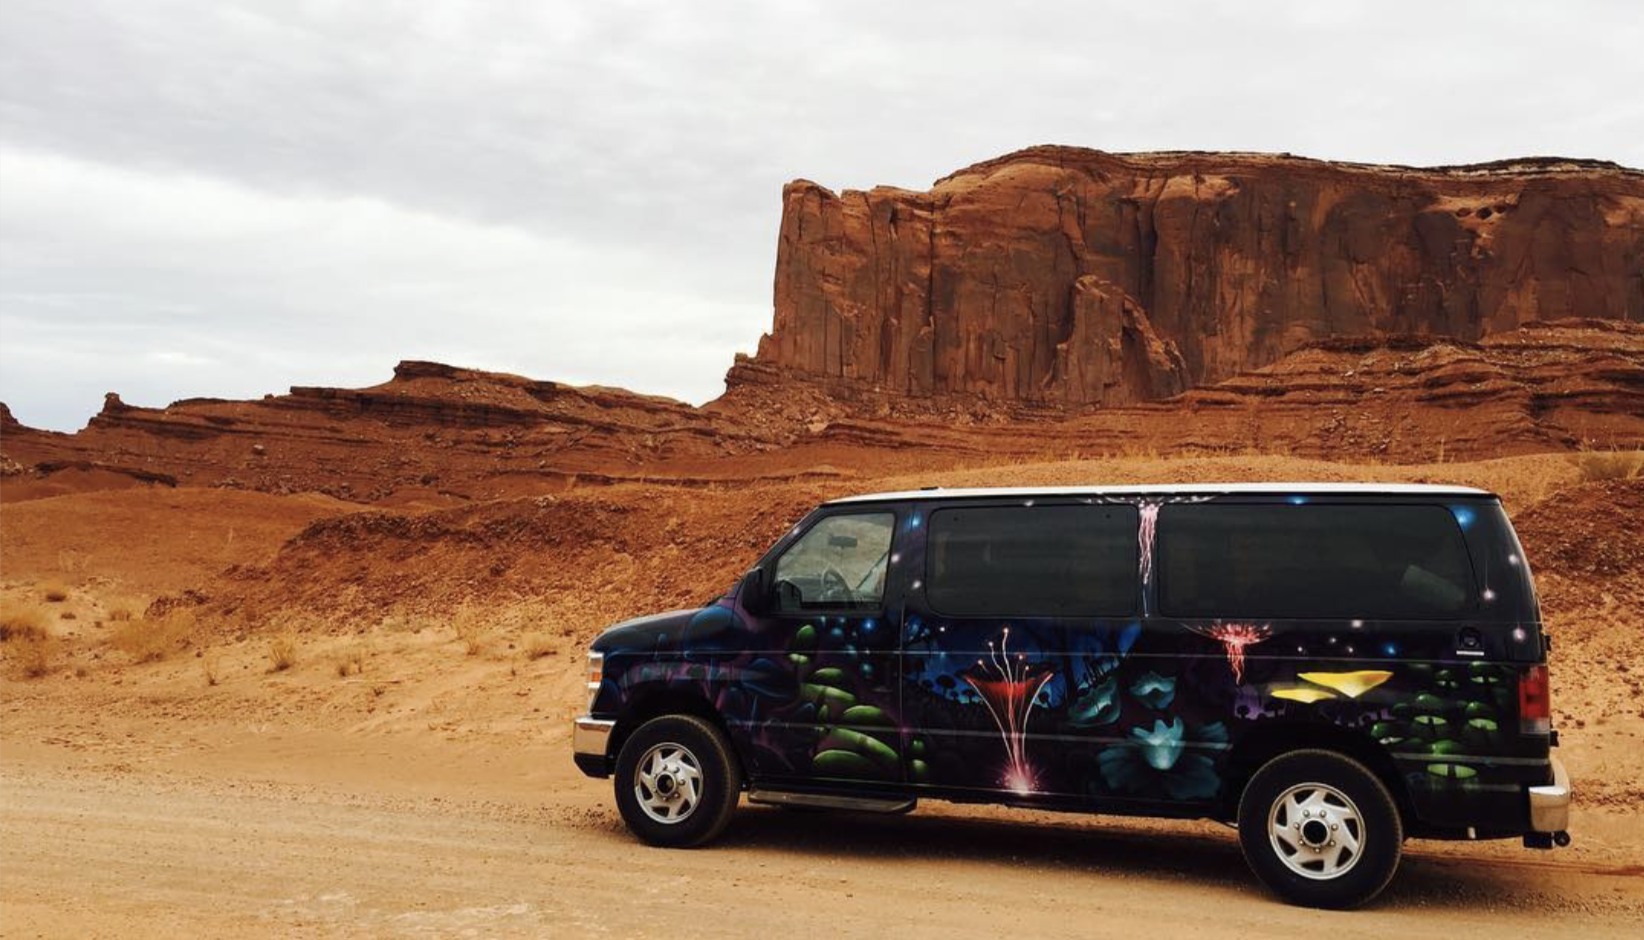 Our rental van from December 2016... the van that started it all!